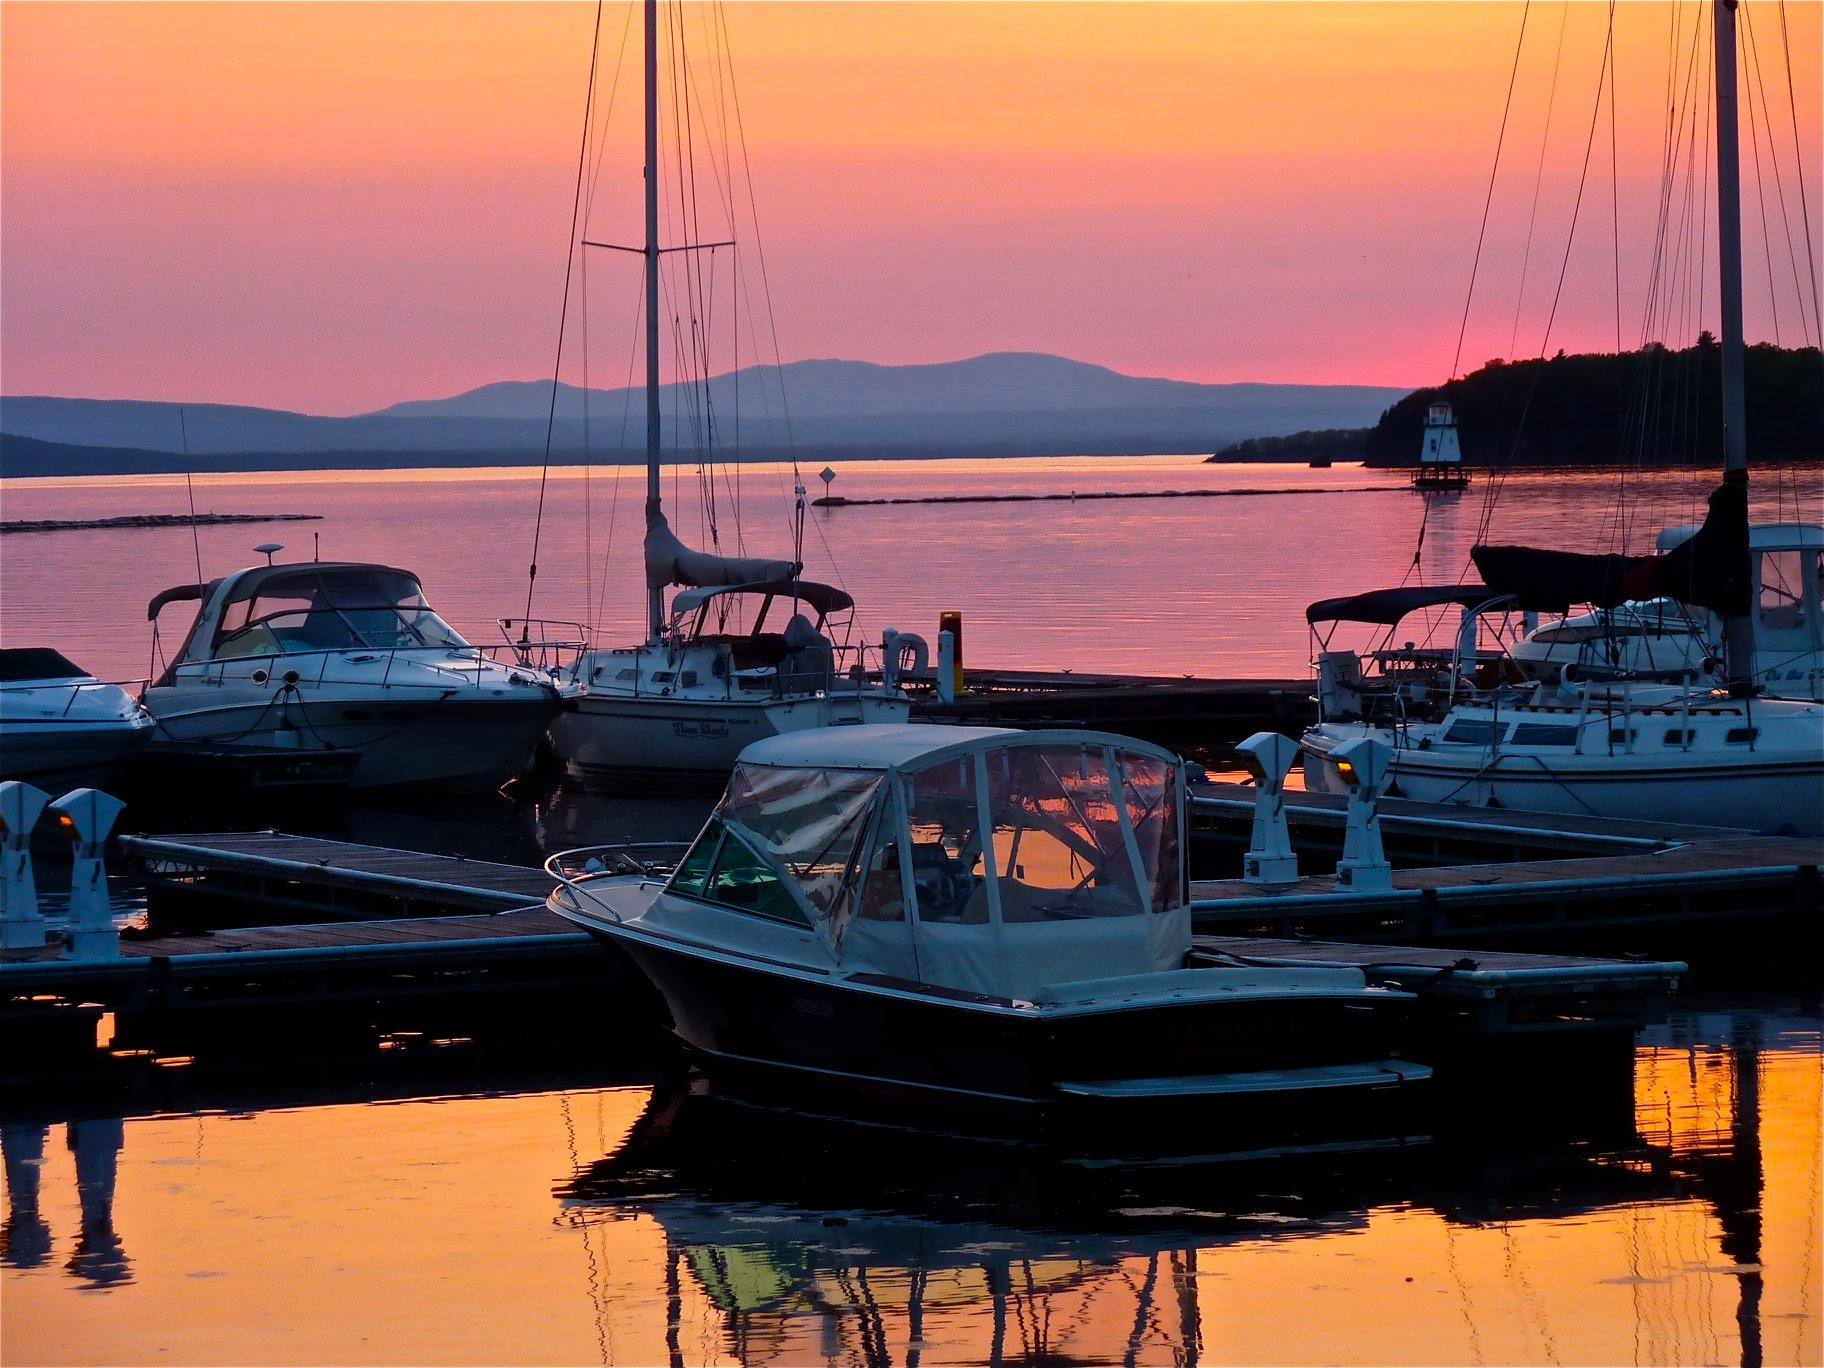 Sunset in Burlington, Vermont at Lake Champlain,